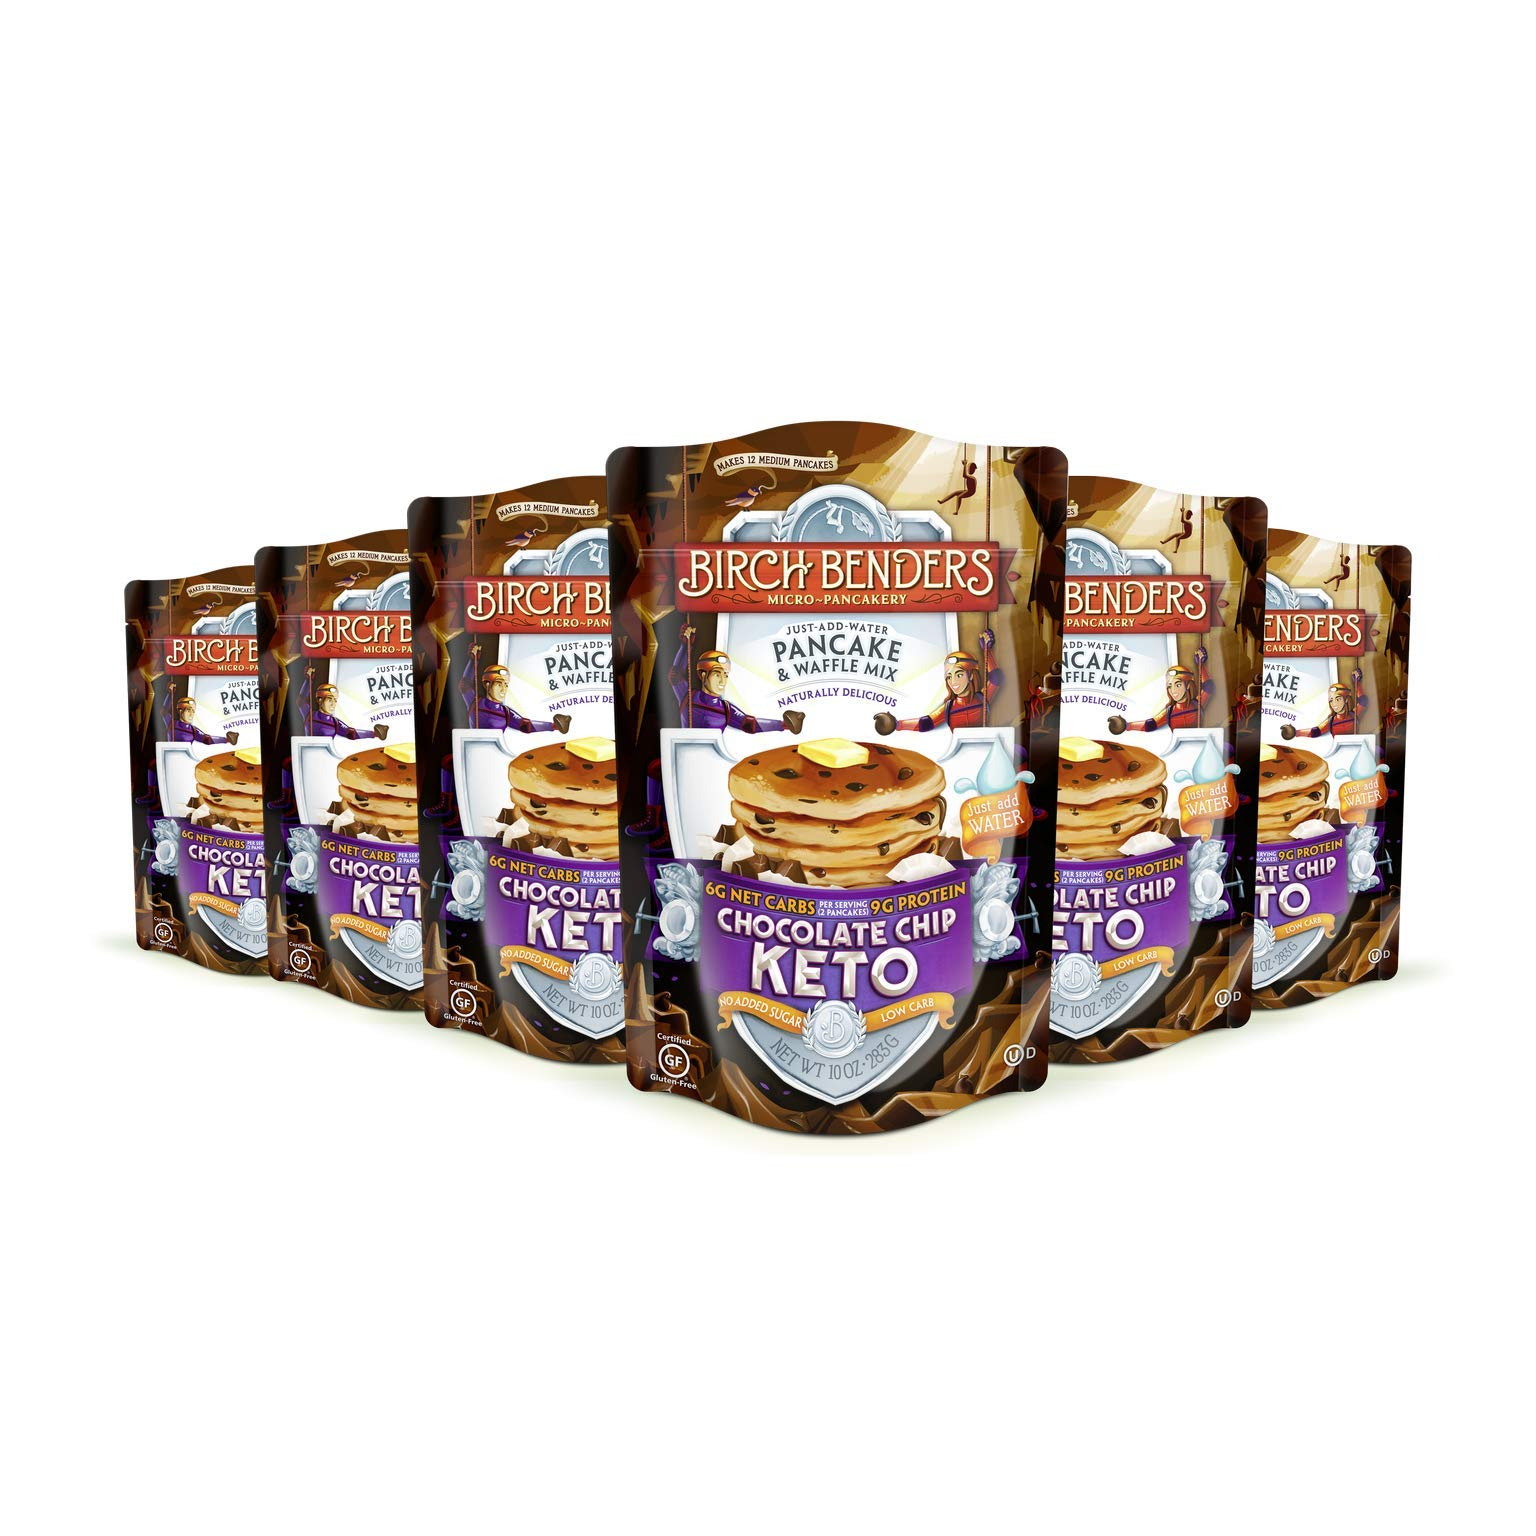 Birch Benders Keto Chocolate Chip Pancake & Waffle Mix with Almond/Coconut & Cassava Flour, 6 Count by Birch Benders (Image #1)